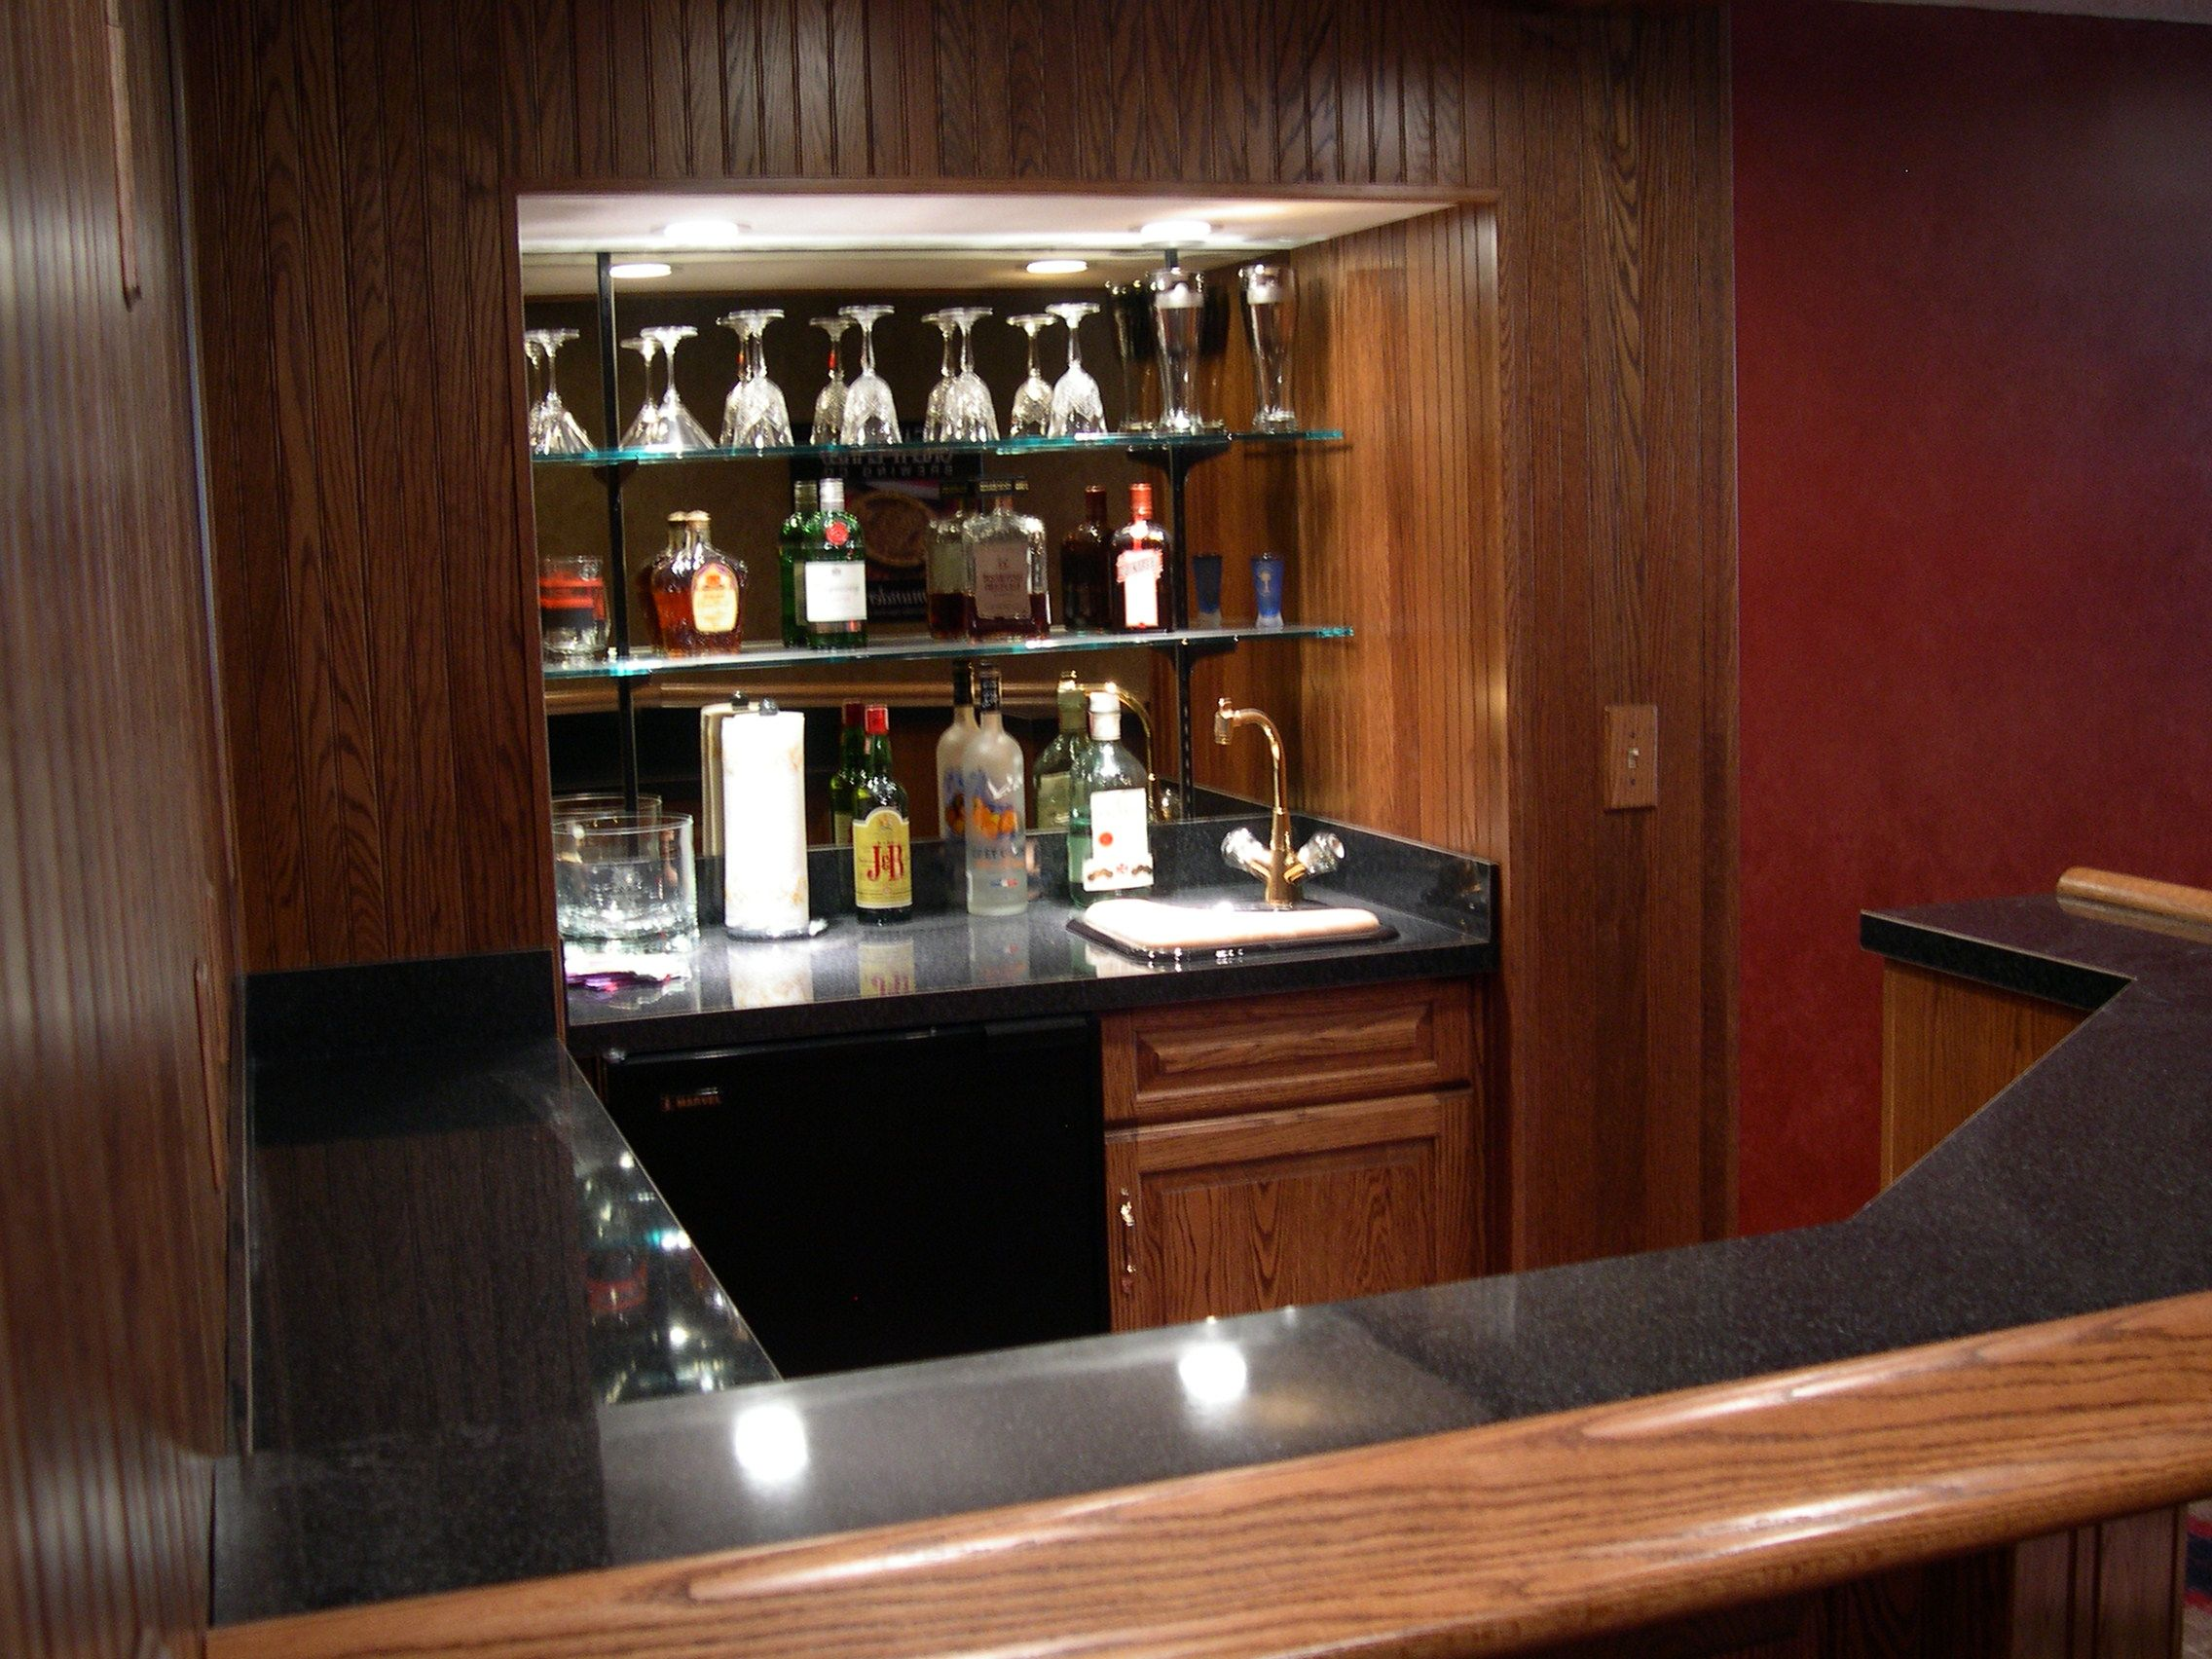 Best Coolest Diy Home Bar Ideas Small Space Decorating 640 x 480